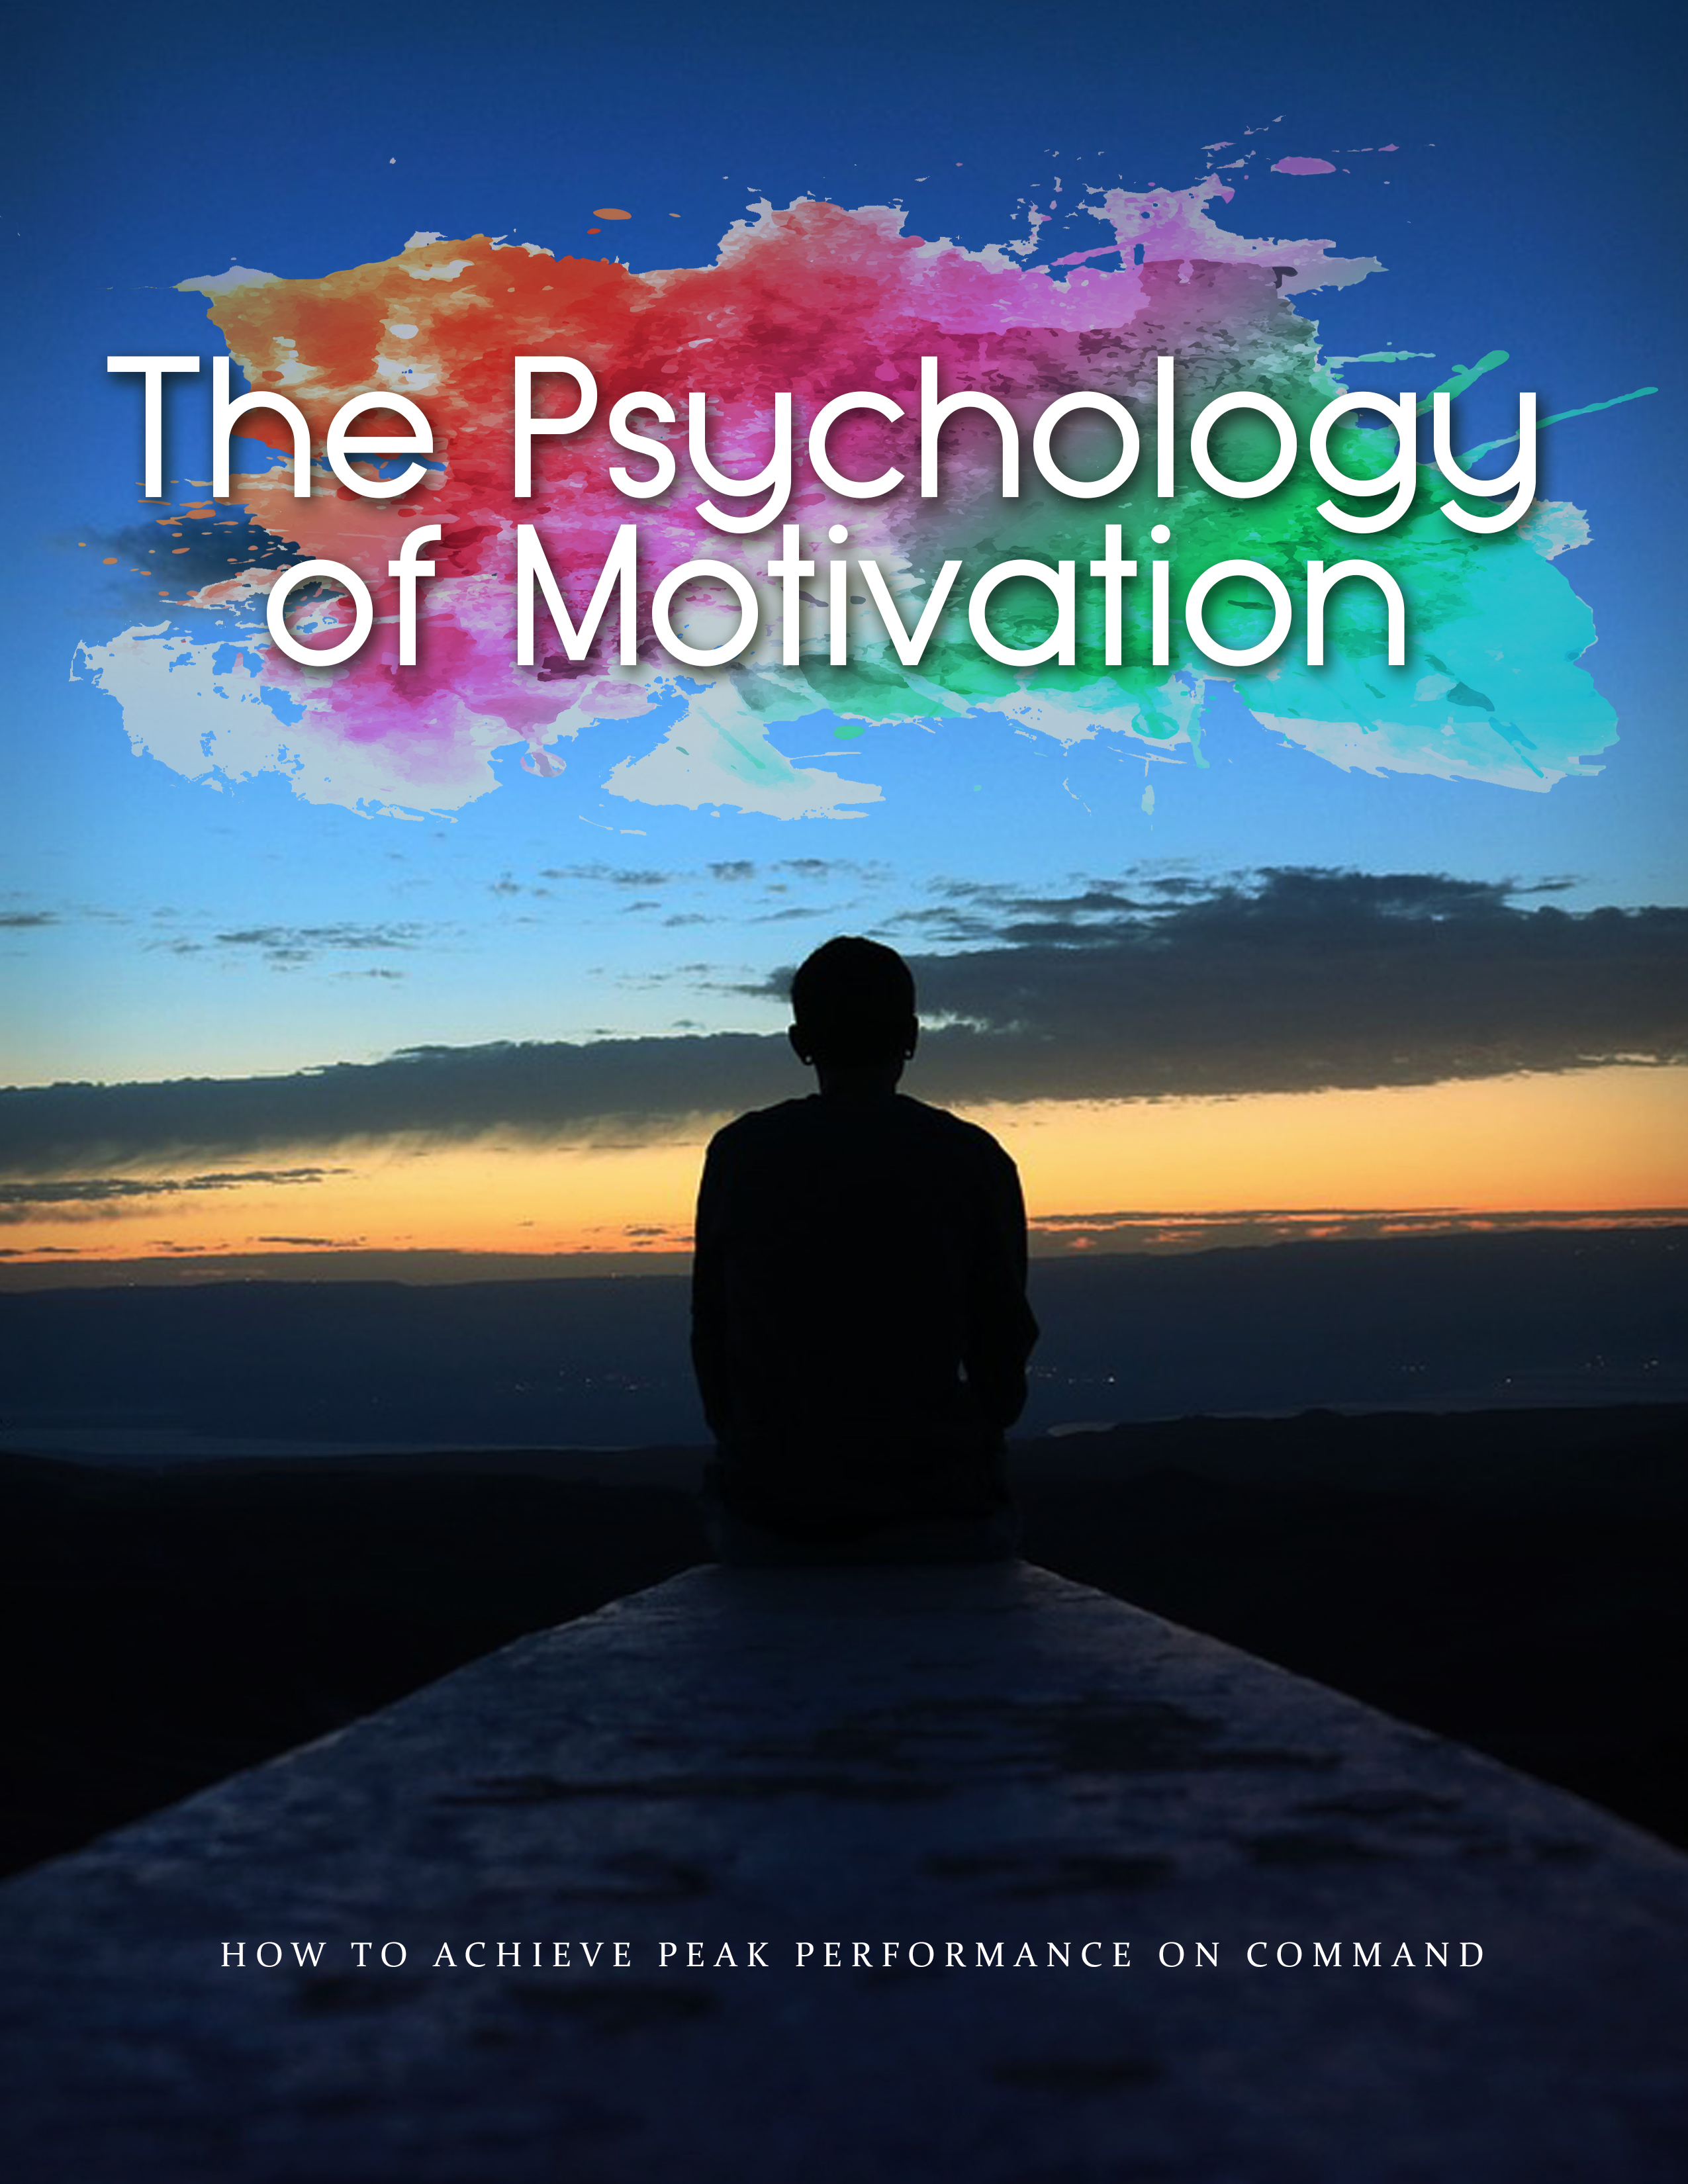 The Psychology Of Motivation (How To Achieve Peak Performance On Command) Ebook's Ebook Image